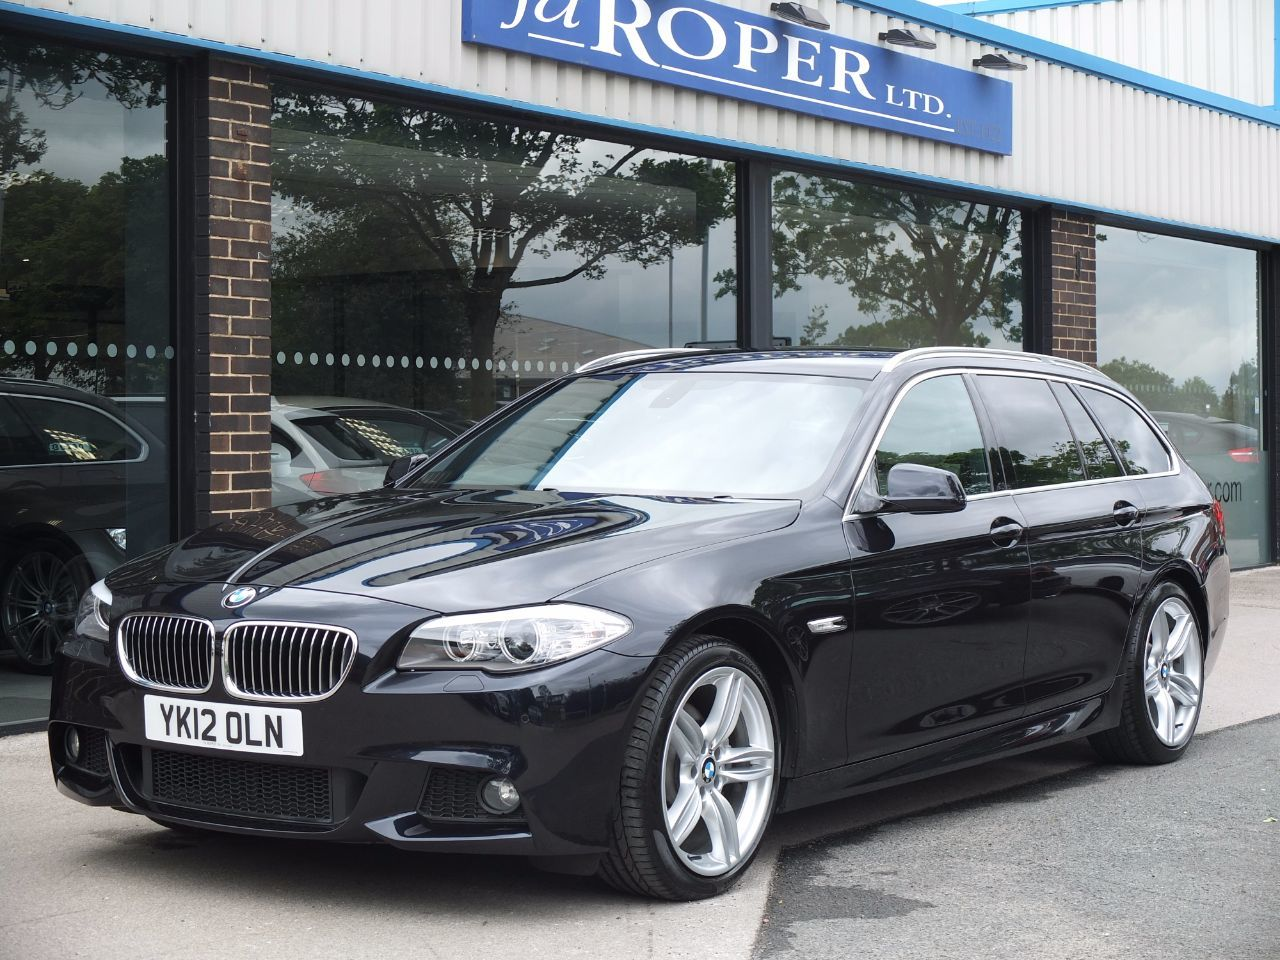 BMW 5 Series 2.0 520d M Sport Touring Auto [Start Stop] +++Spec Estate Diesel Carbon Black MetallicBMW 5 Series 2.0 520d M Sport Touring Auto [Start Stop] +++Spec Estate Diesel Carbon Black Metallic at fa Roper Ltd Bradford